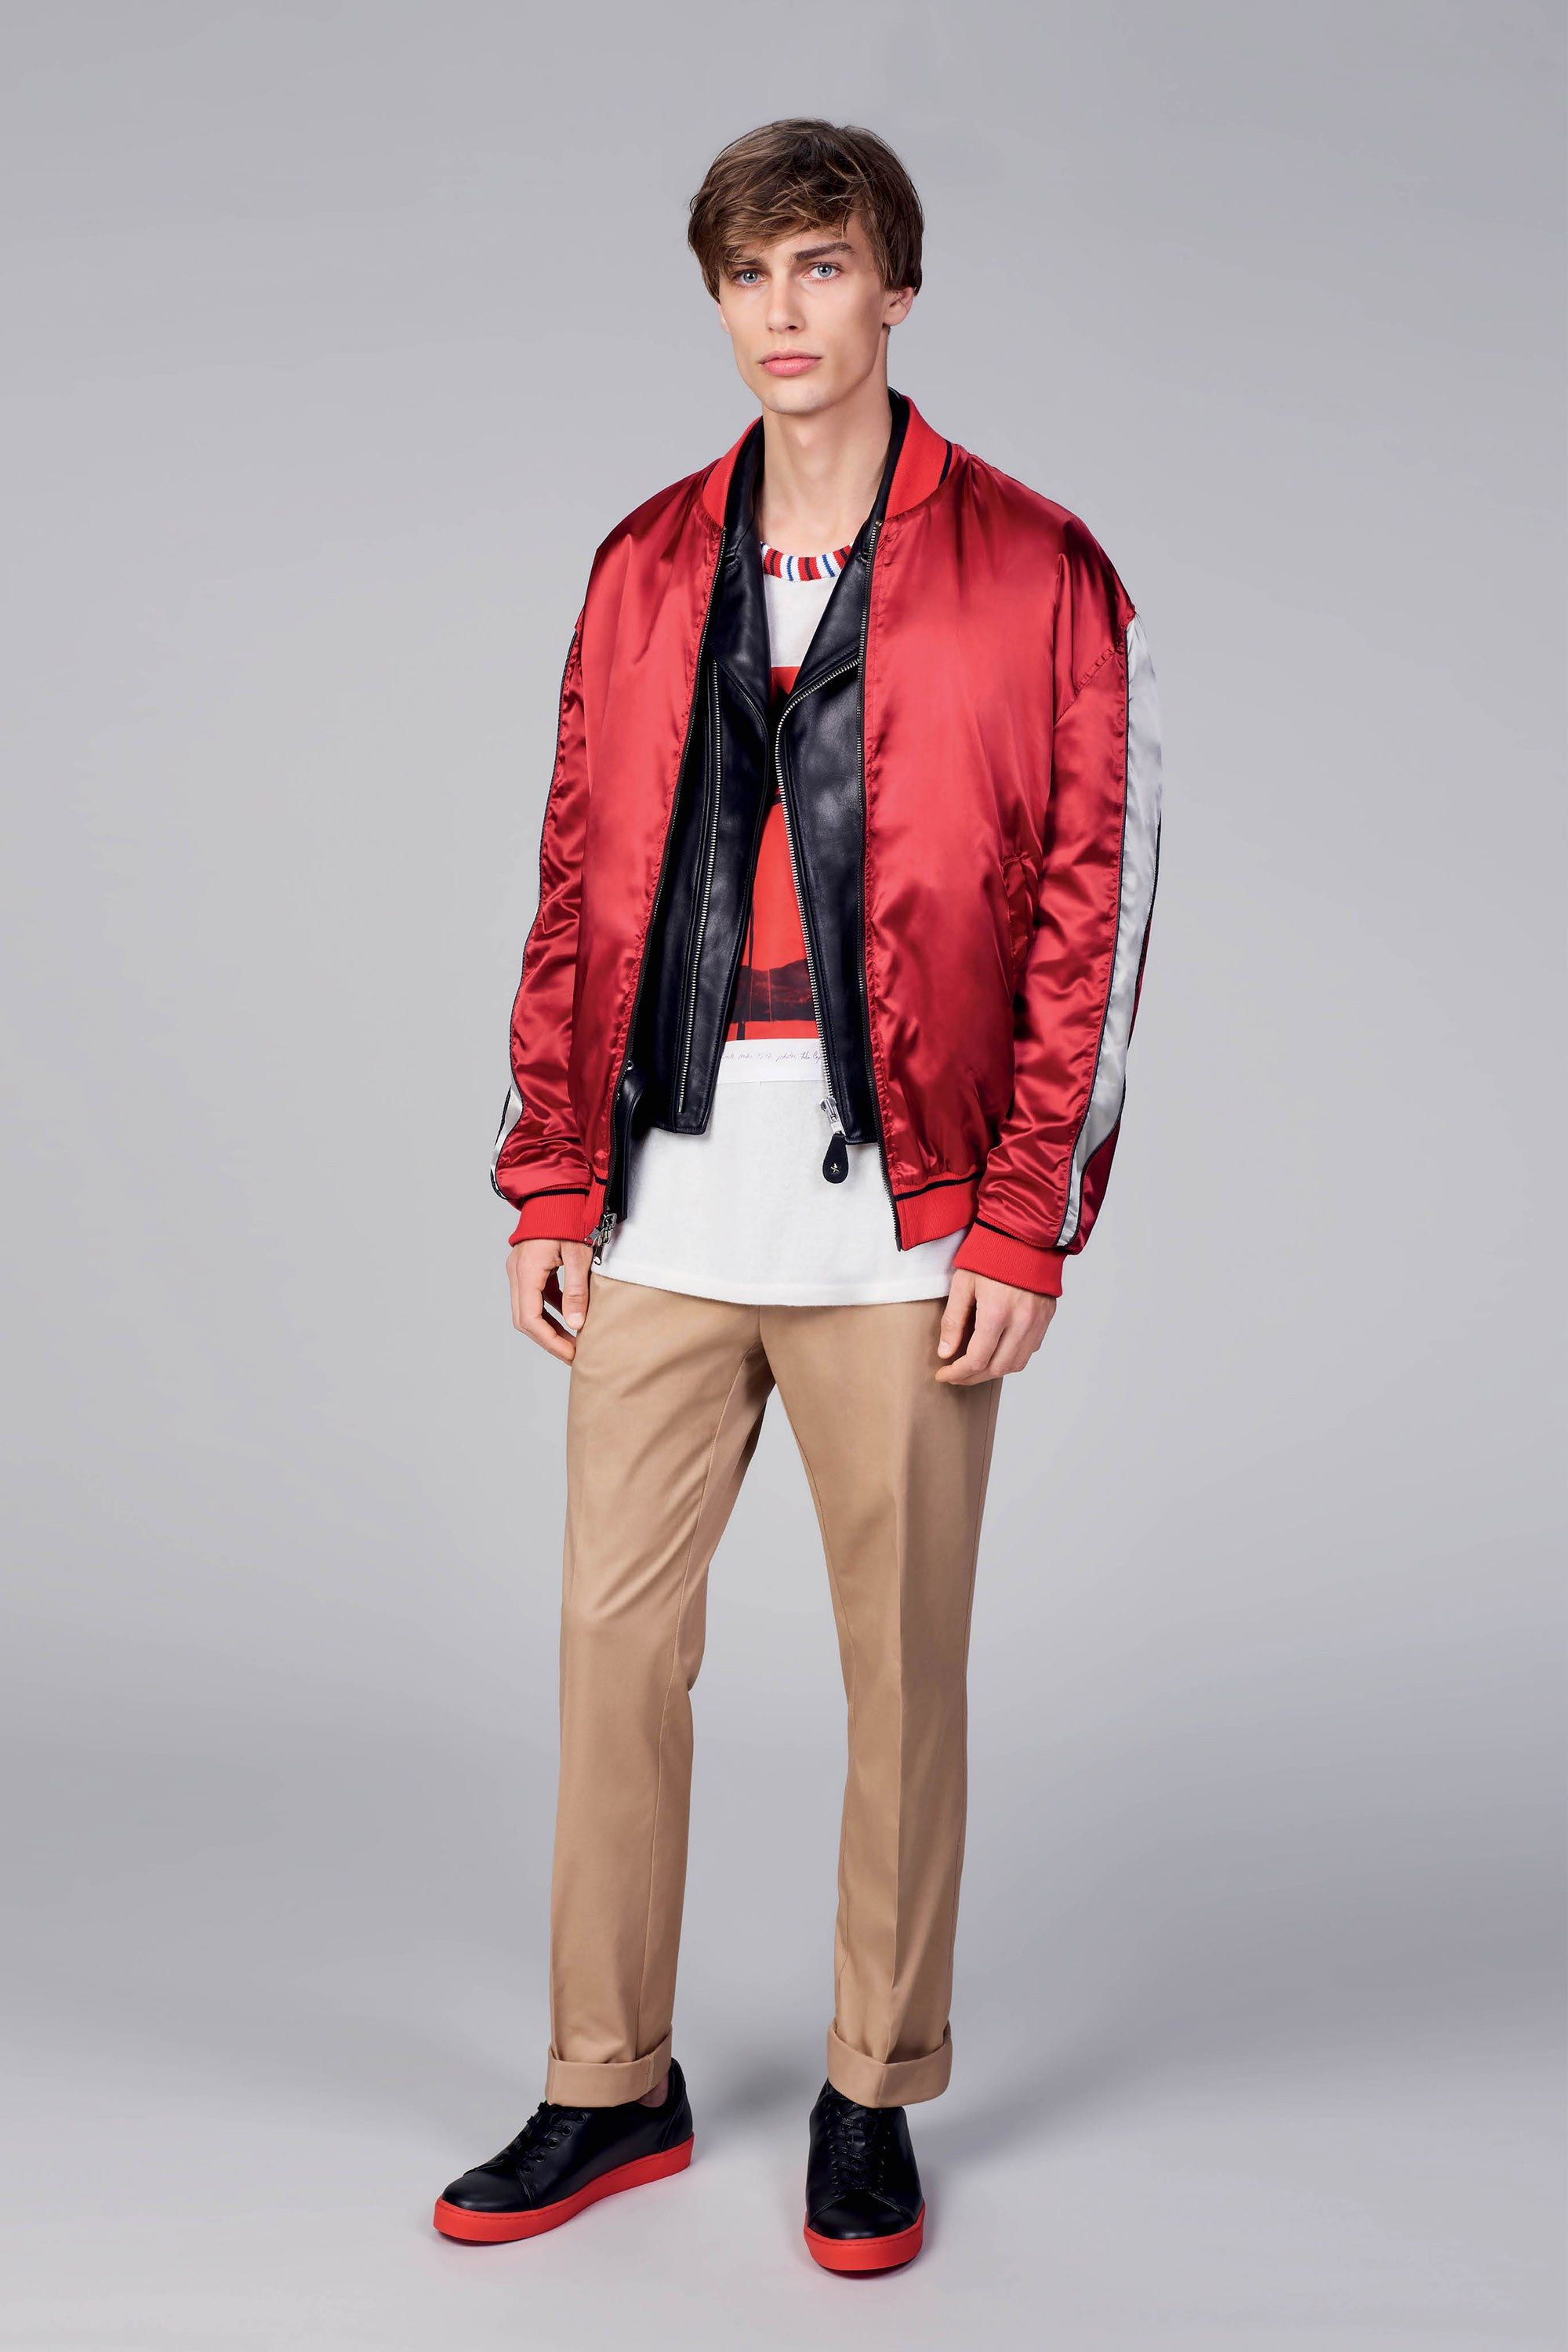 6b90842d337d Tommy Hilfiger Spring 2018 Menswear Collection Photos - Vogue T恤领口罗纹  Catwalk Collection